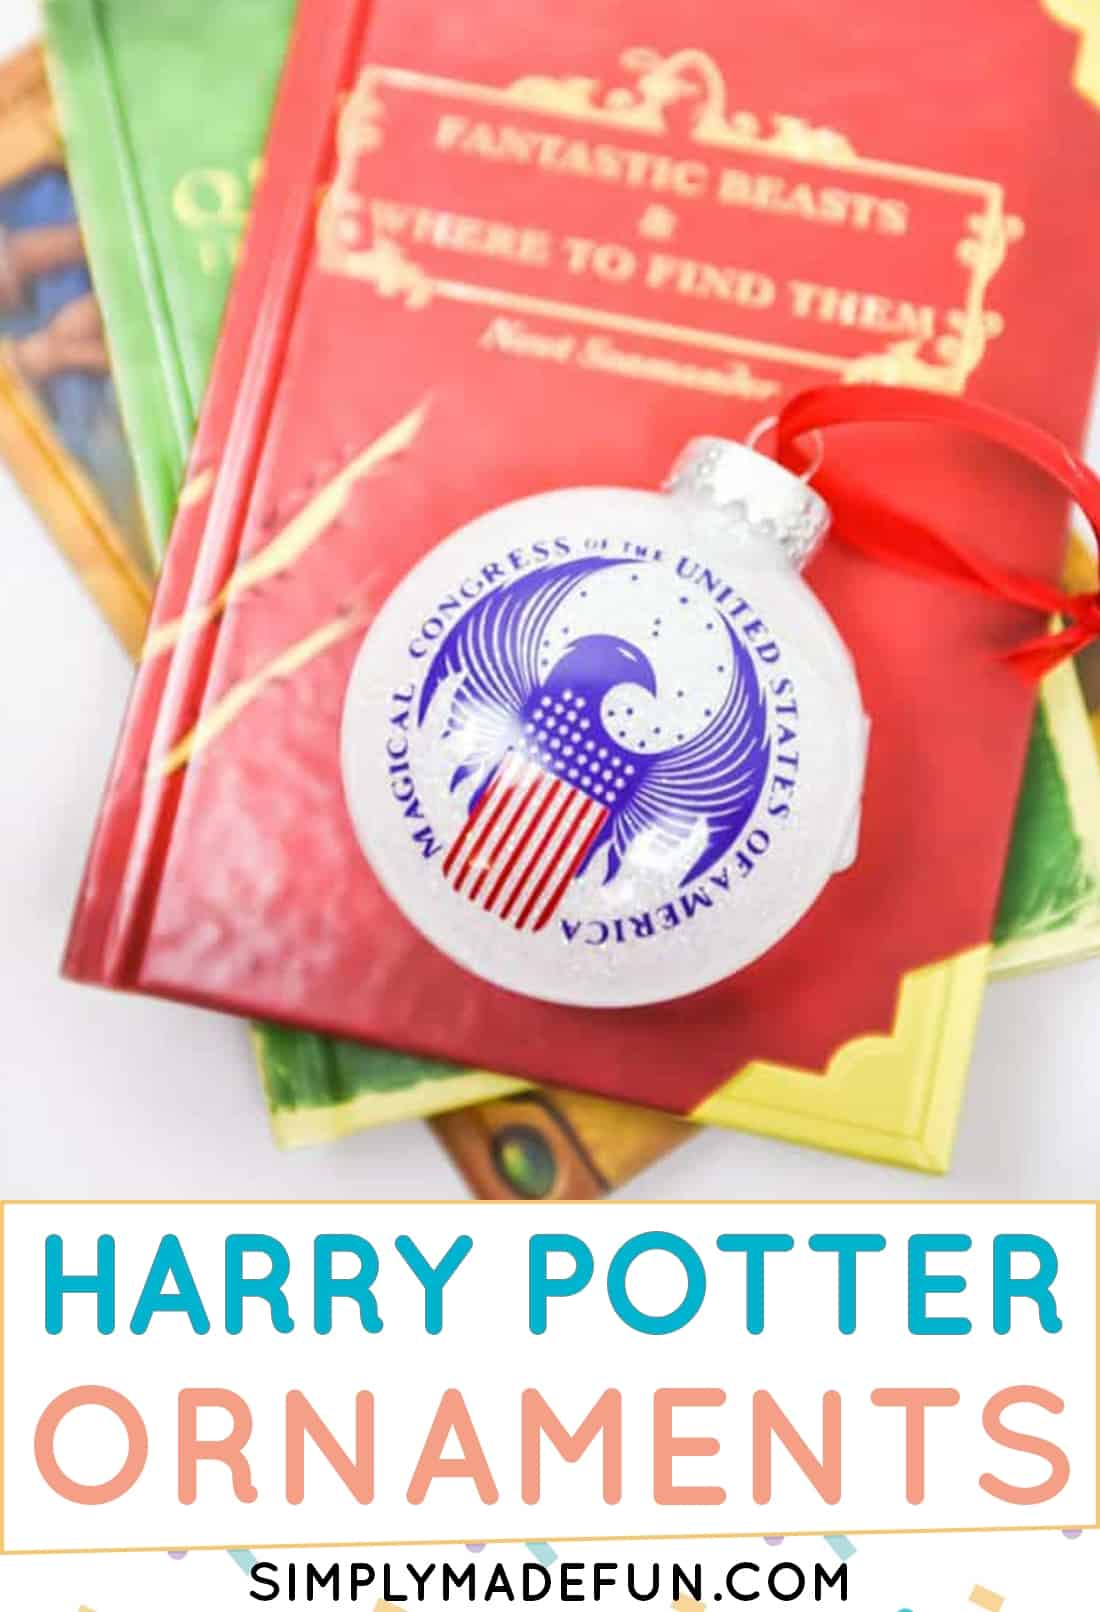 Harry Potter Ministry of Magic Christmas Ornaments